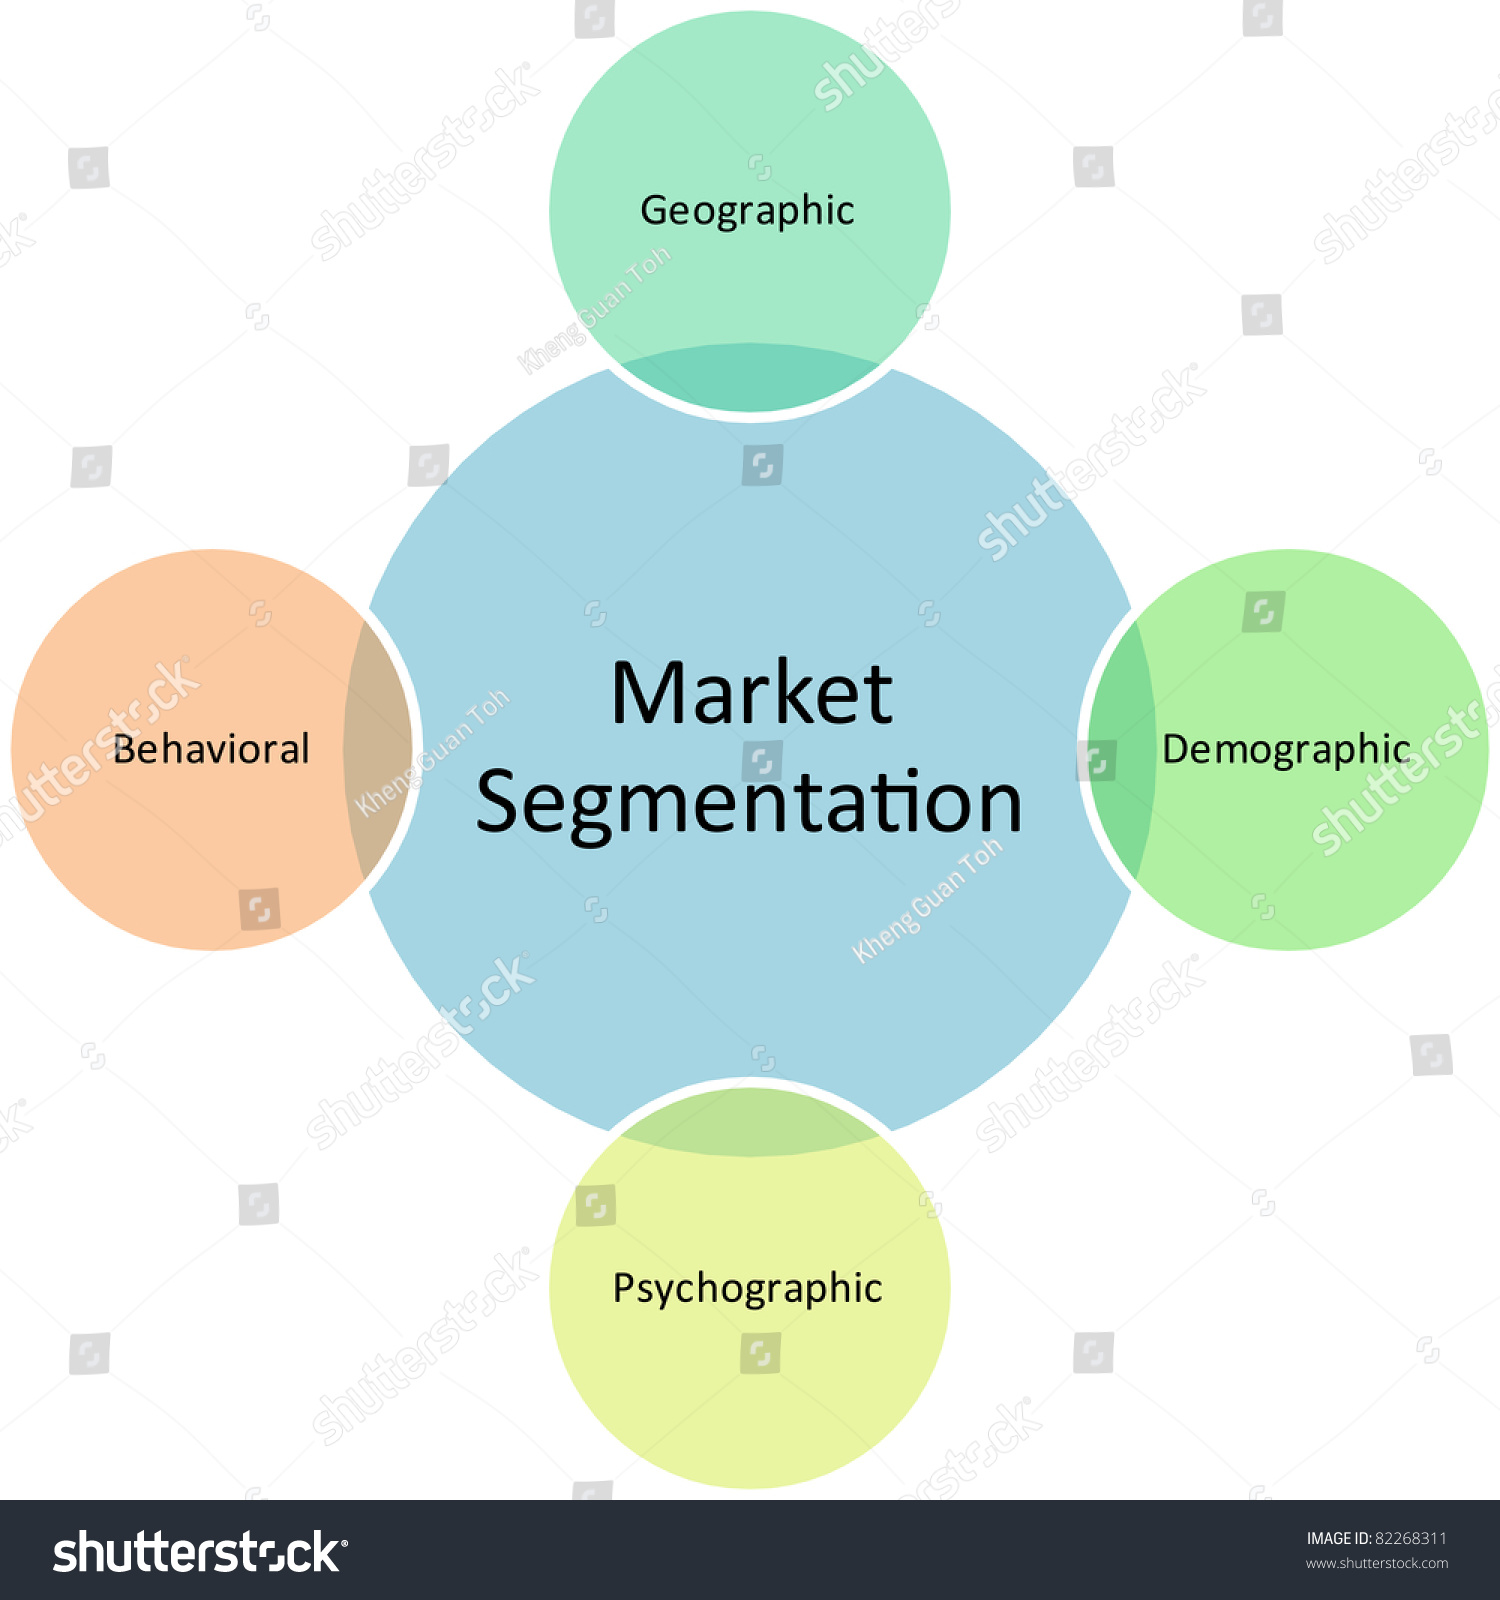 Market Segmentation Business Diagram Management Strategy